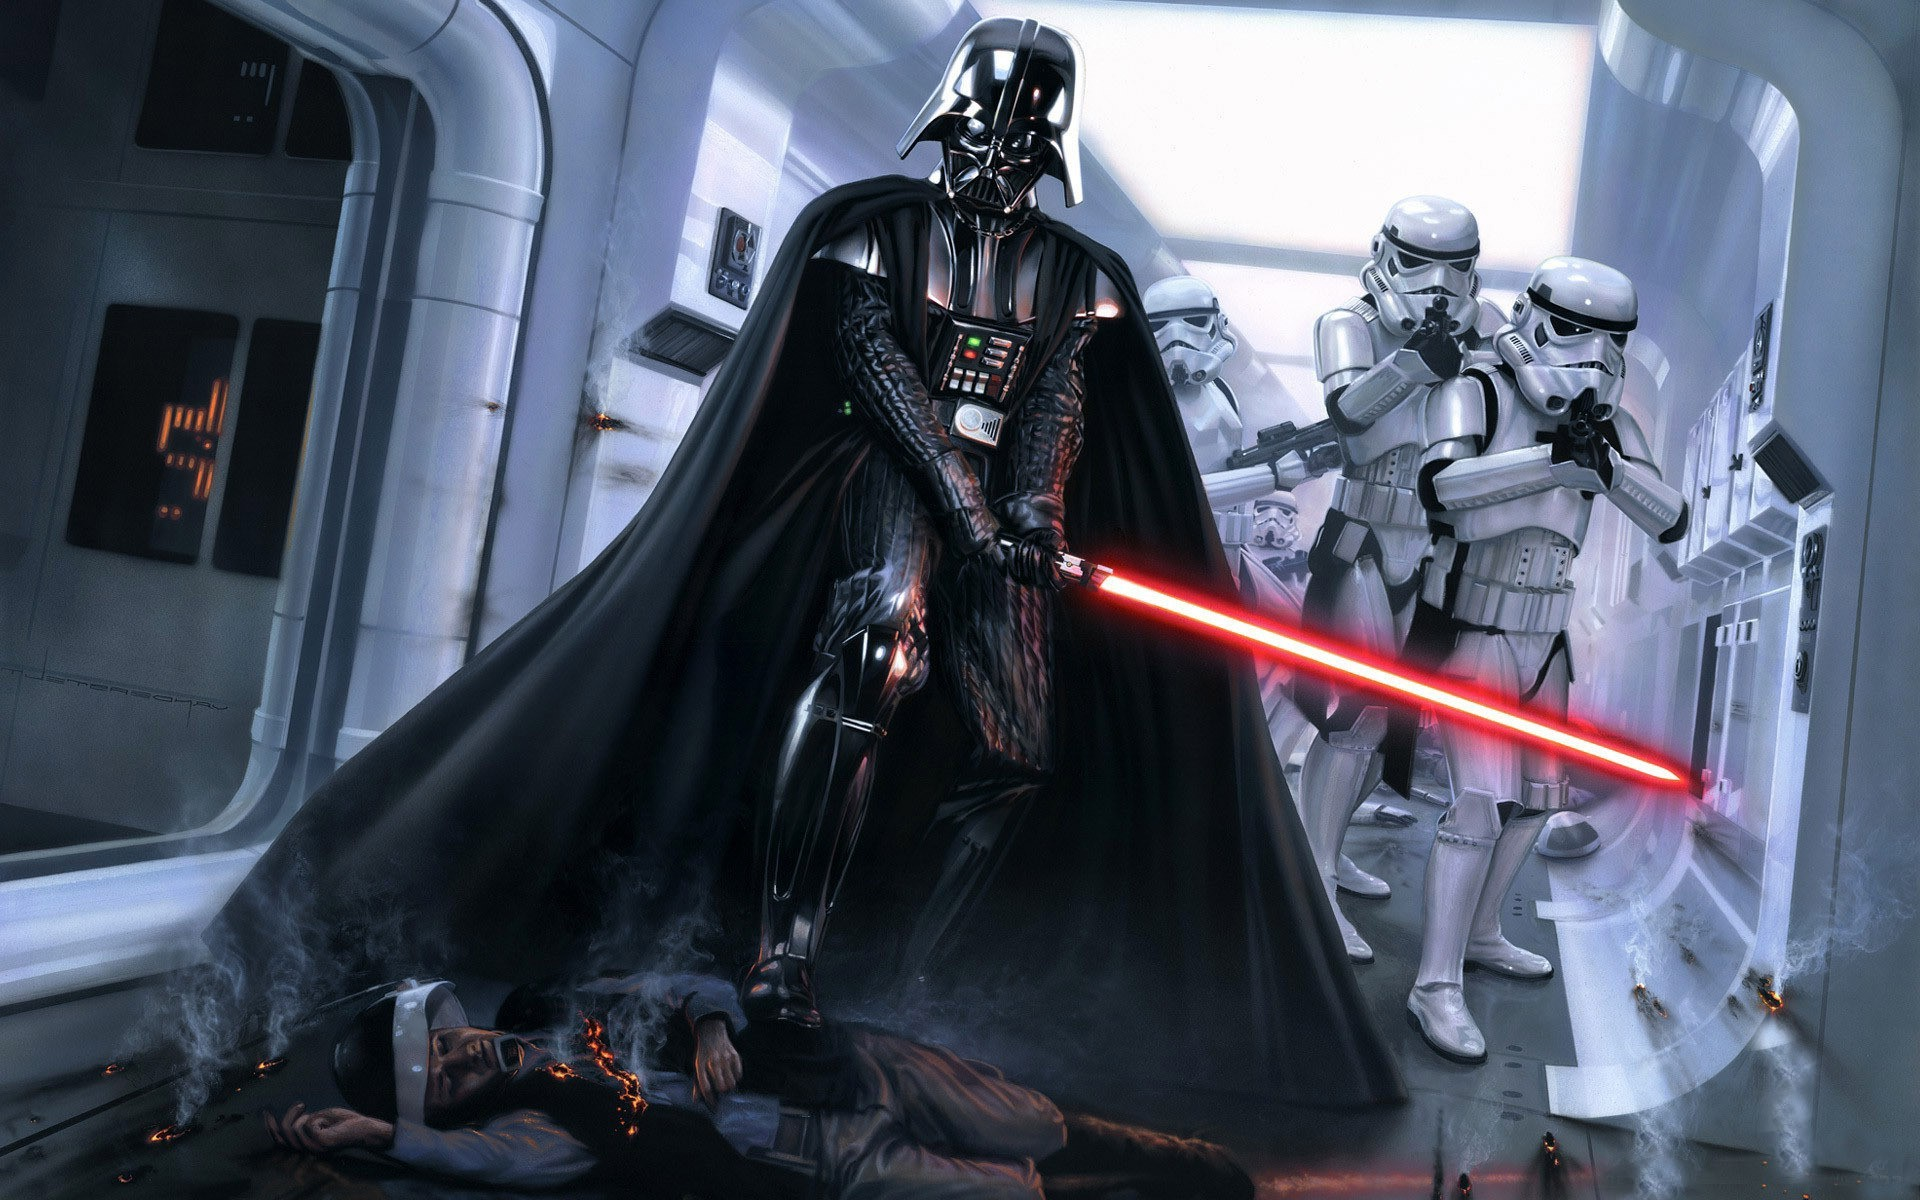 Res: 1920x1200, Stormtroopers Darth Vader wallpapers (2 Wallpapers)